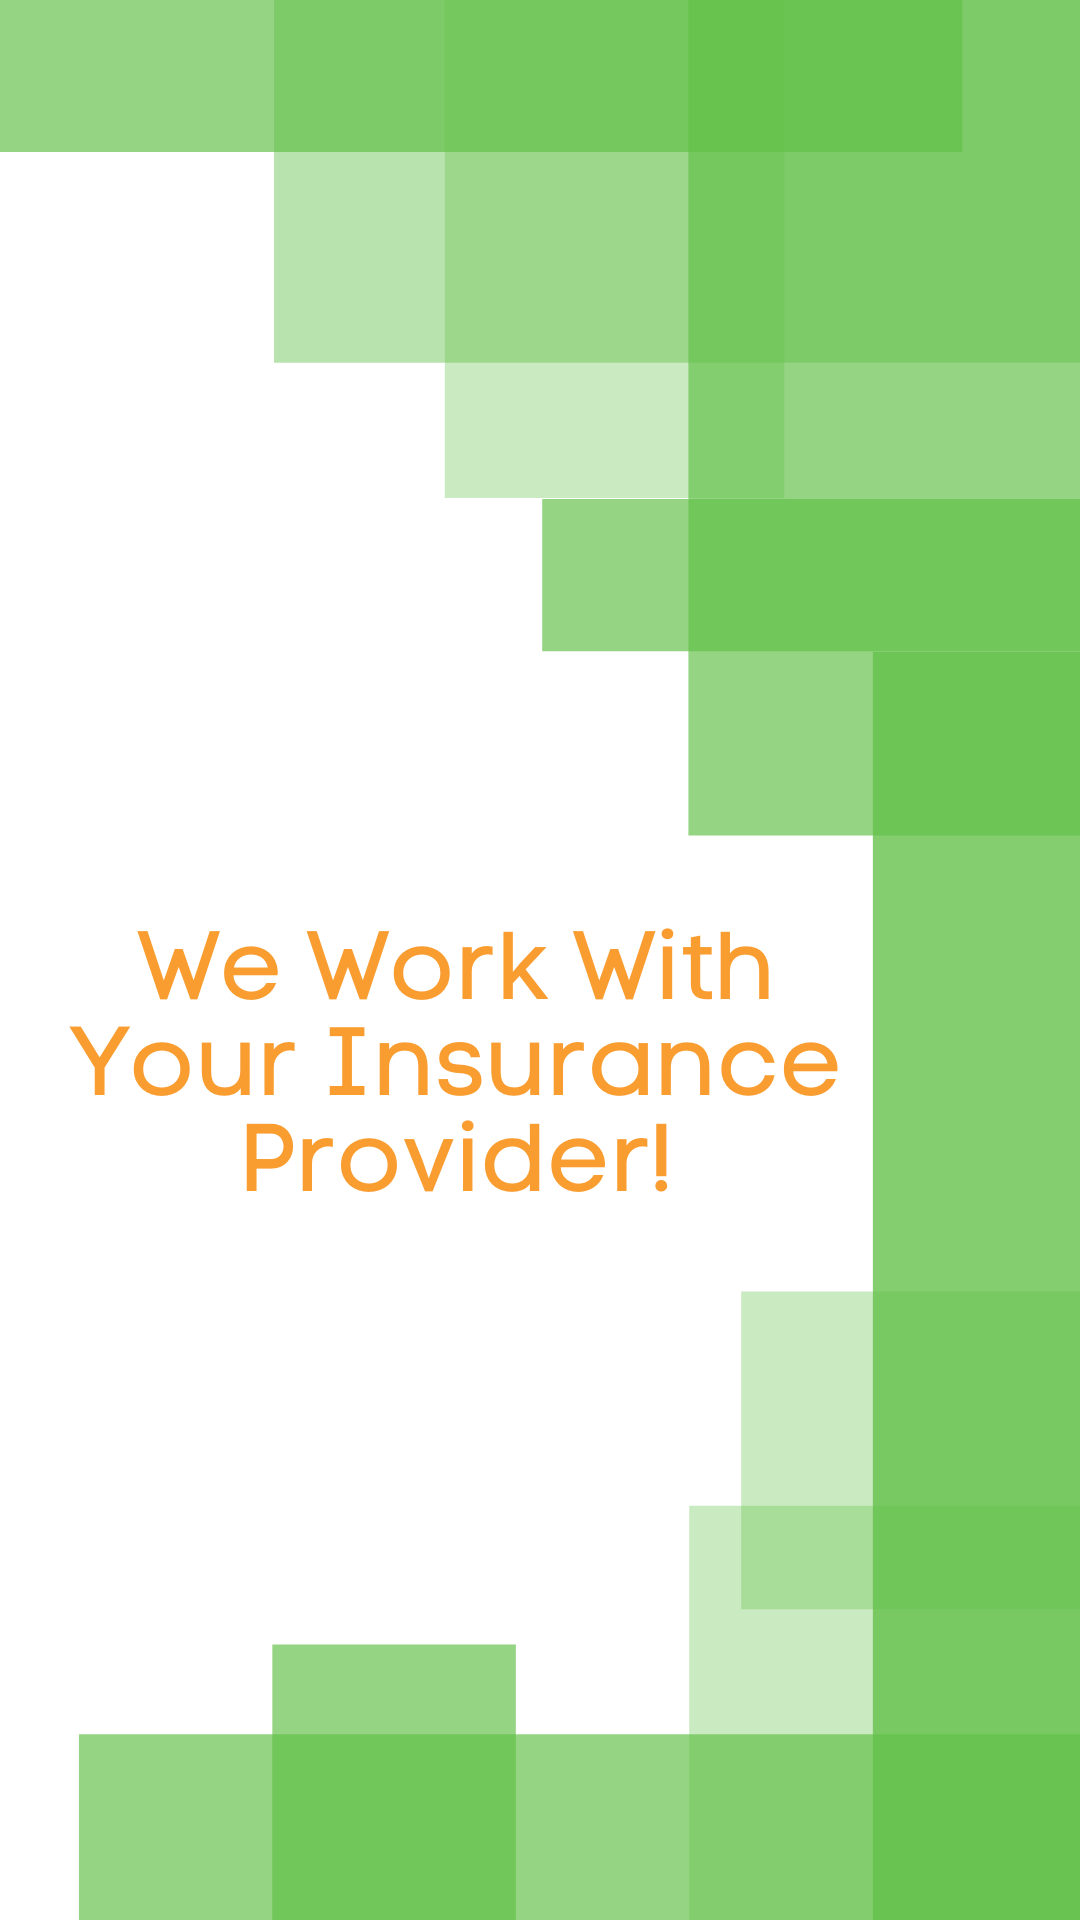 Advanced Brain + Body Clinic works with your insurance provider to help with esketamine and TMS therapy costs.